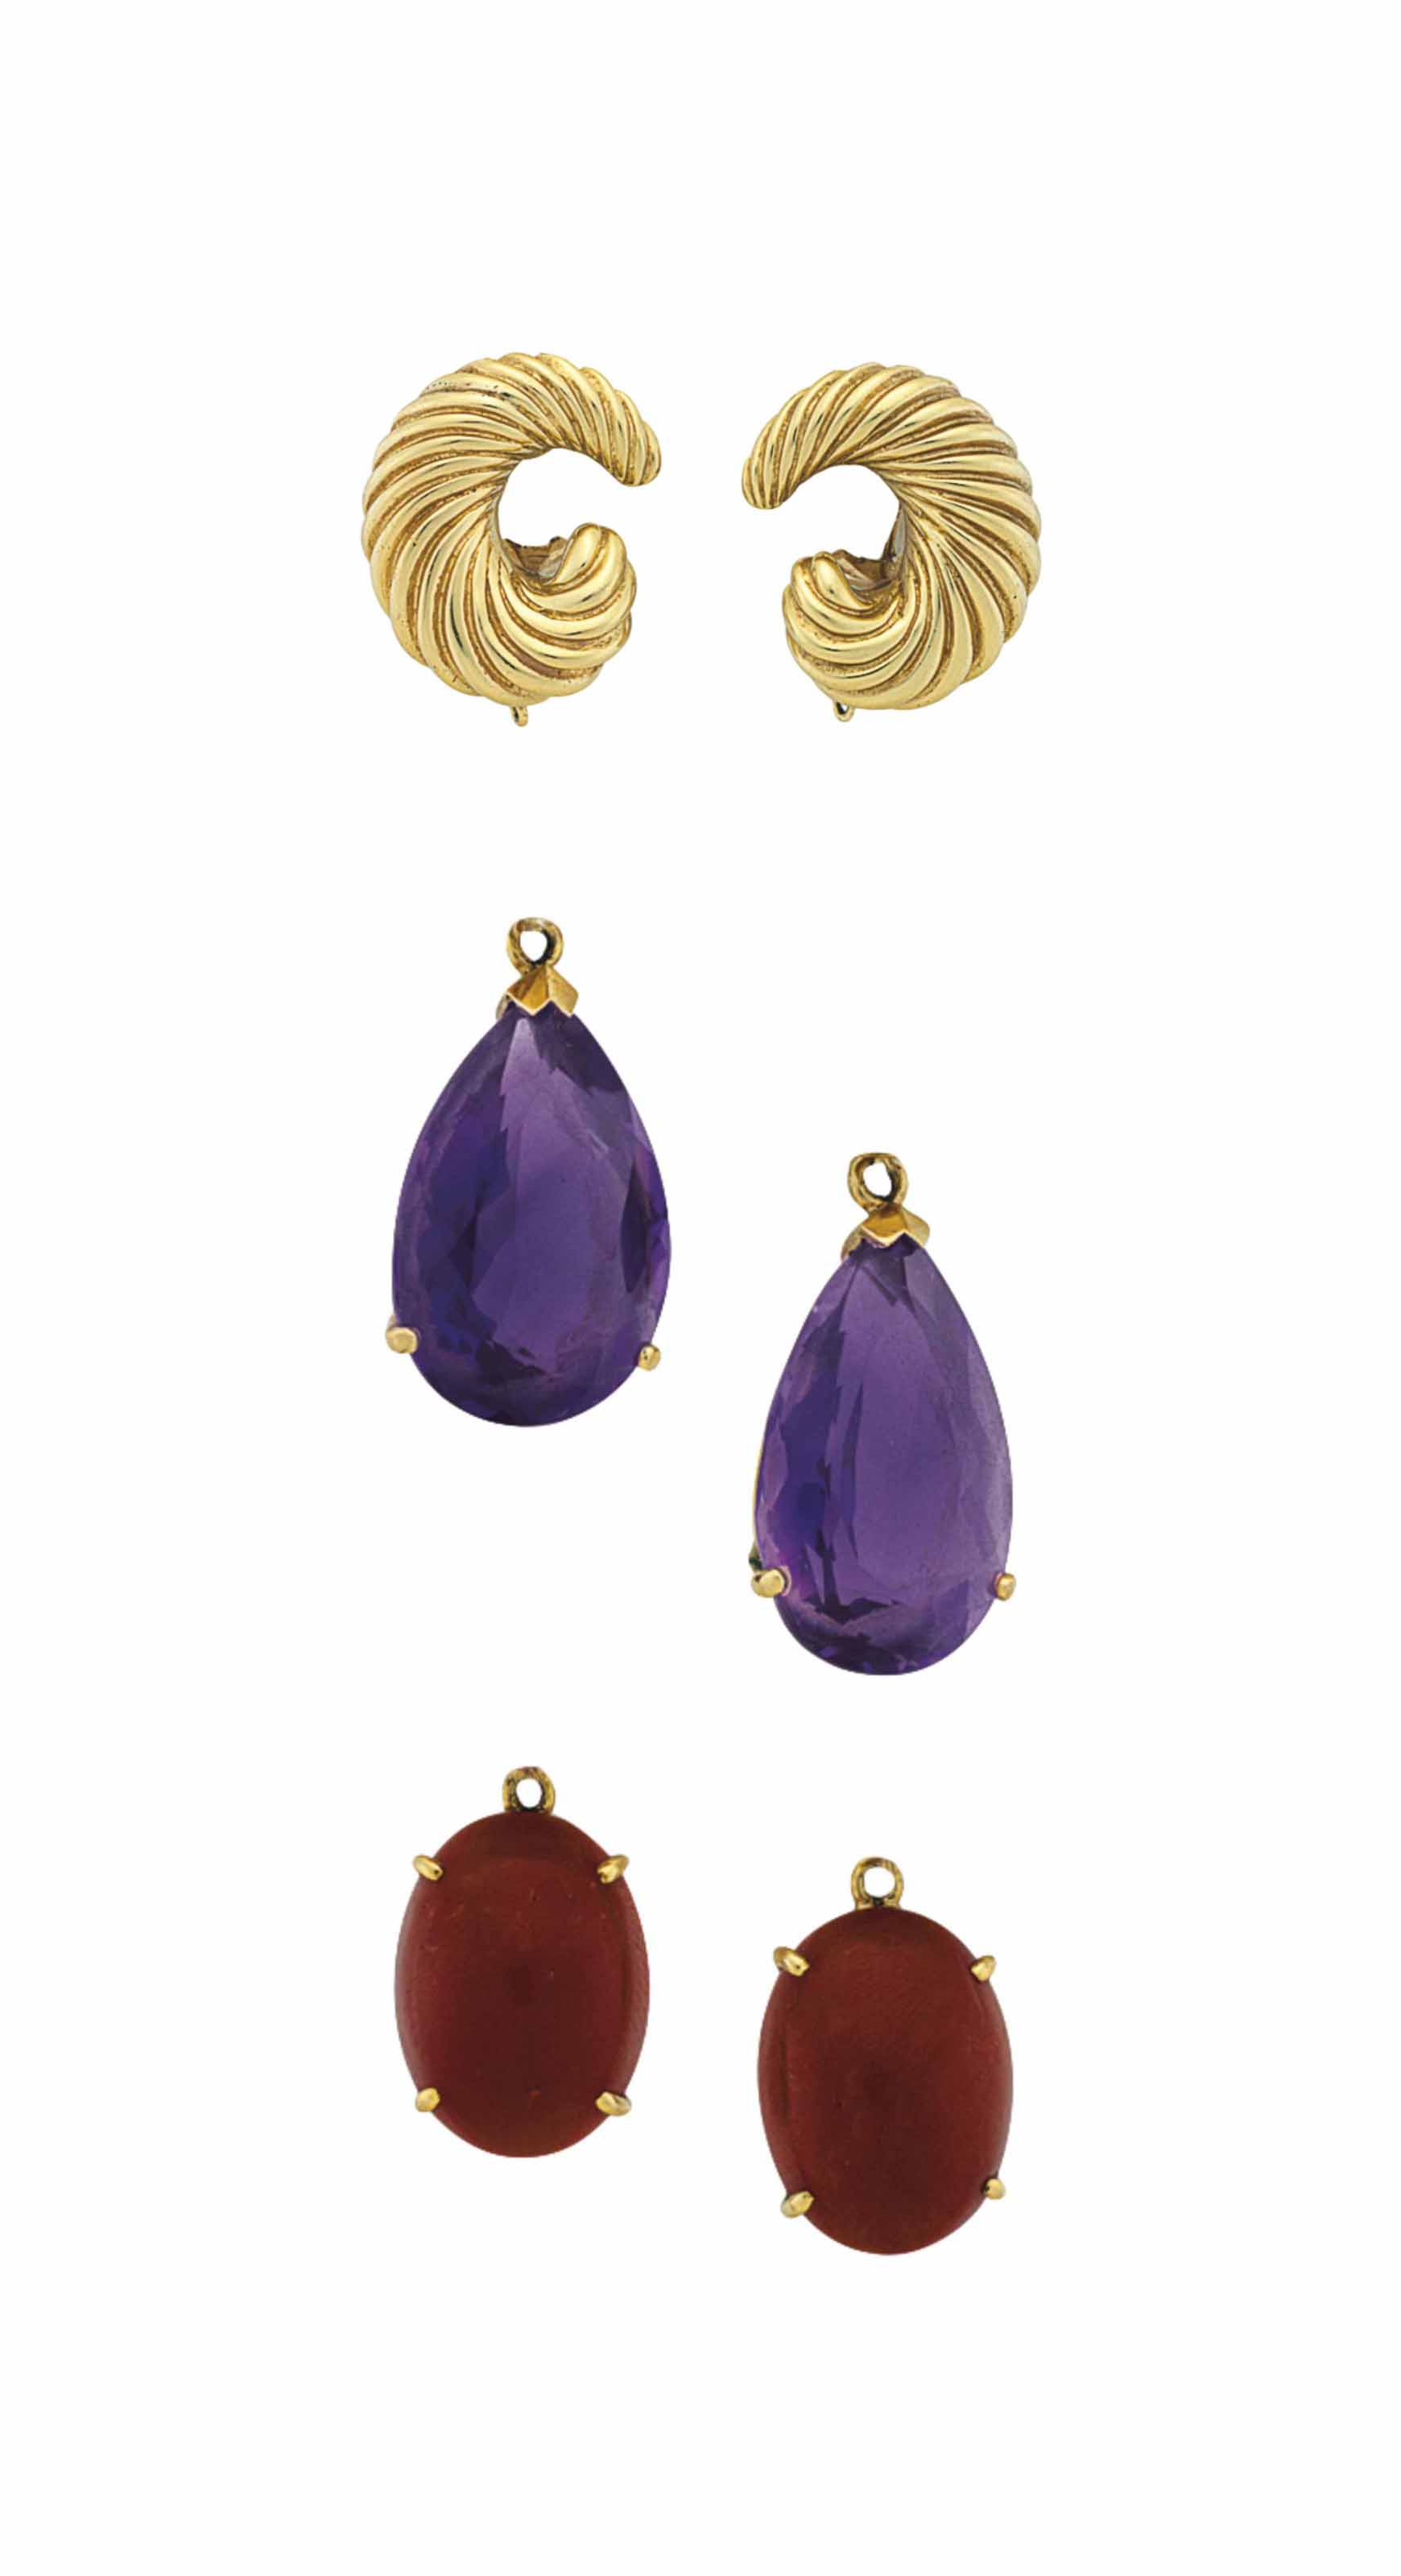 ~A PAIR OF GOLD EAR CLIPS, BY